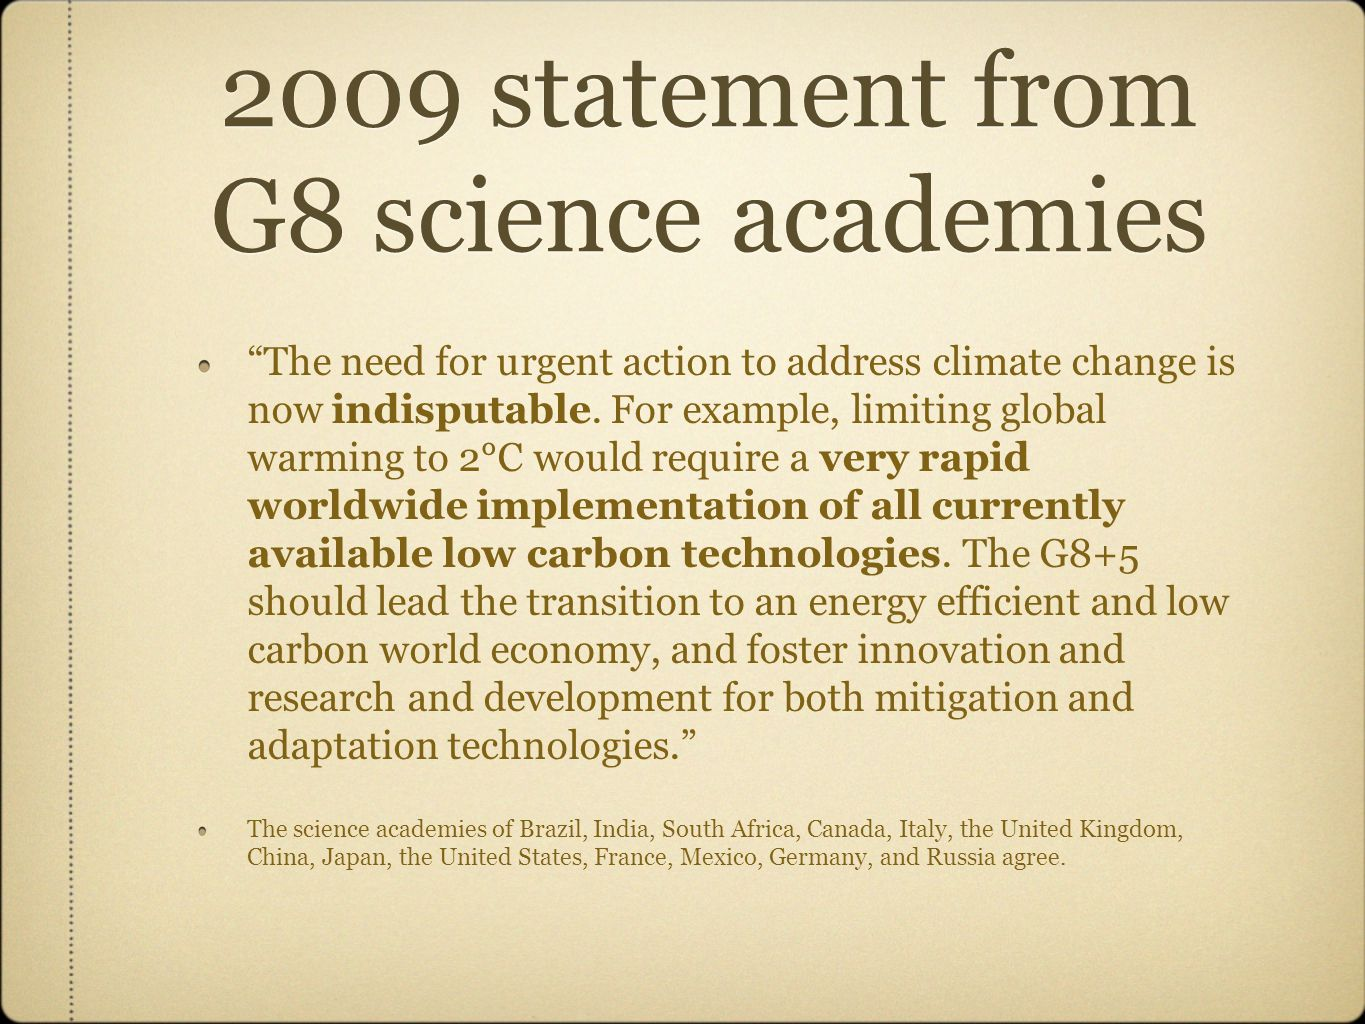 2009 statement from G8 science academies The need for urgent action to address climate change is now indisputable.